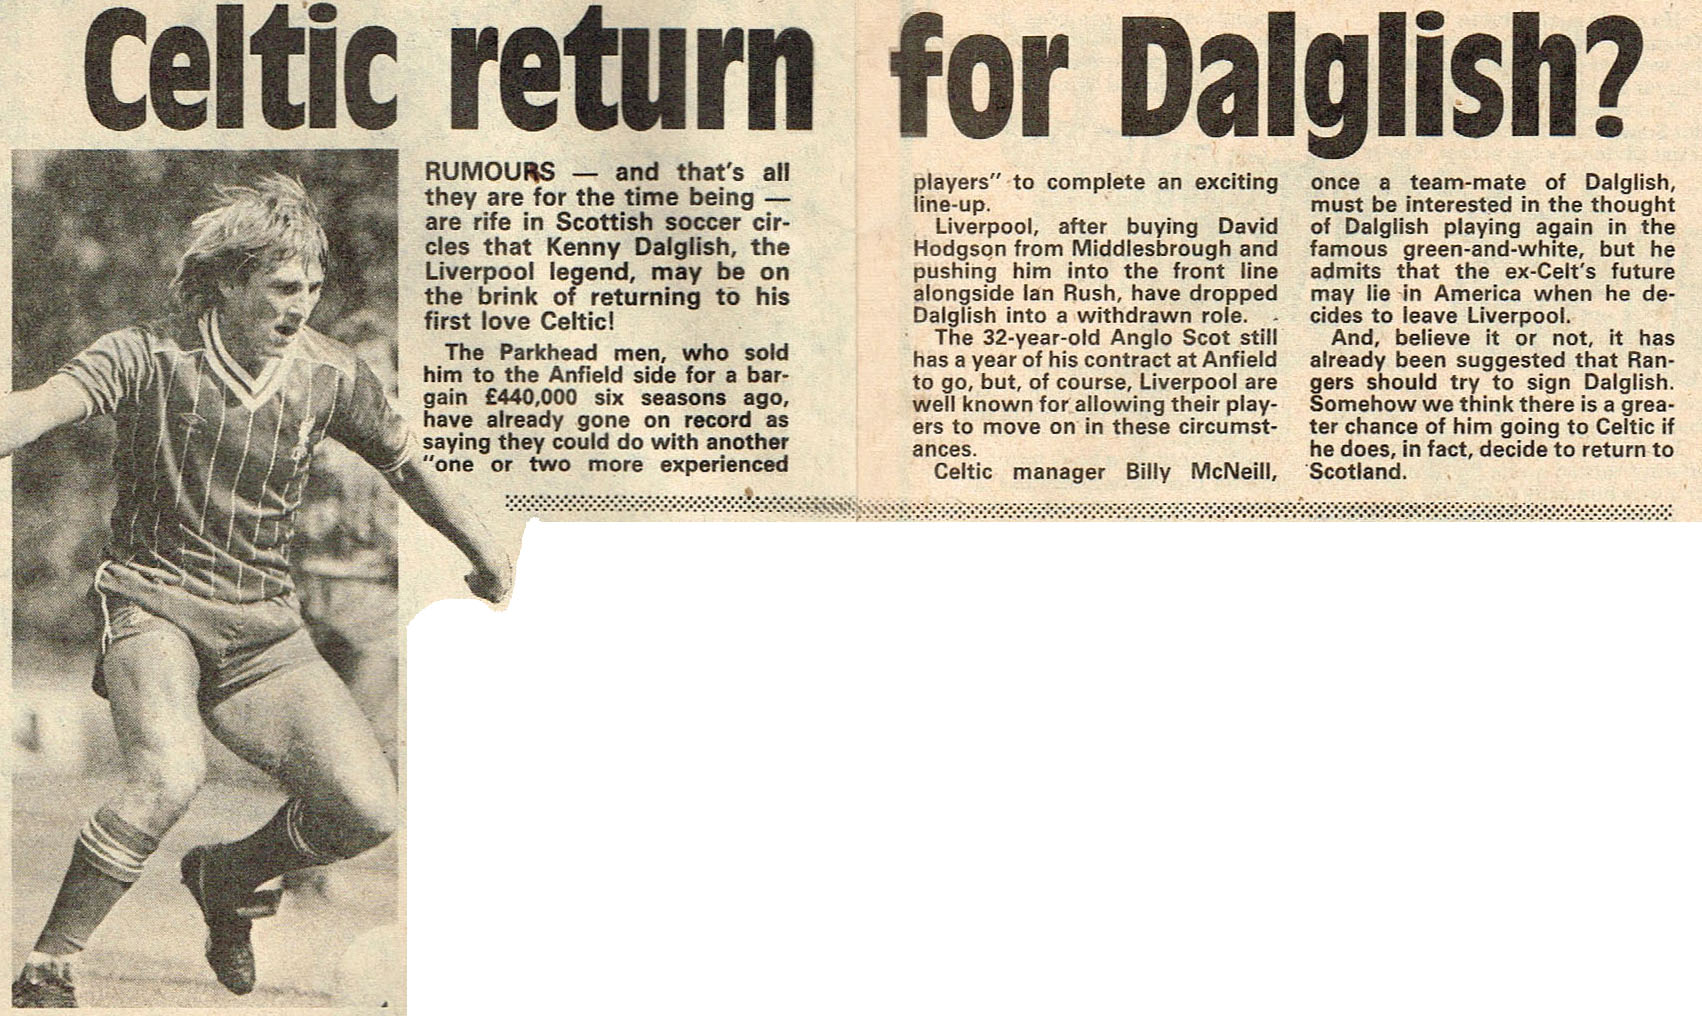 Celtic return for Dalglish? - 9 October 1982